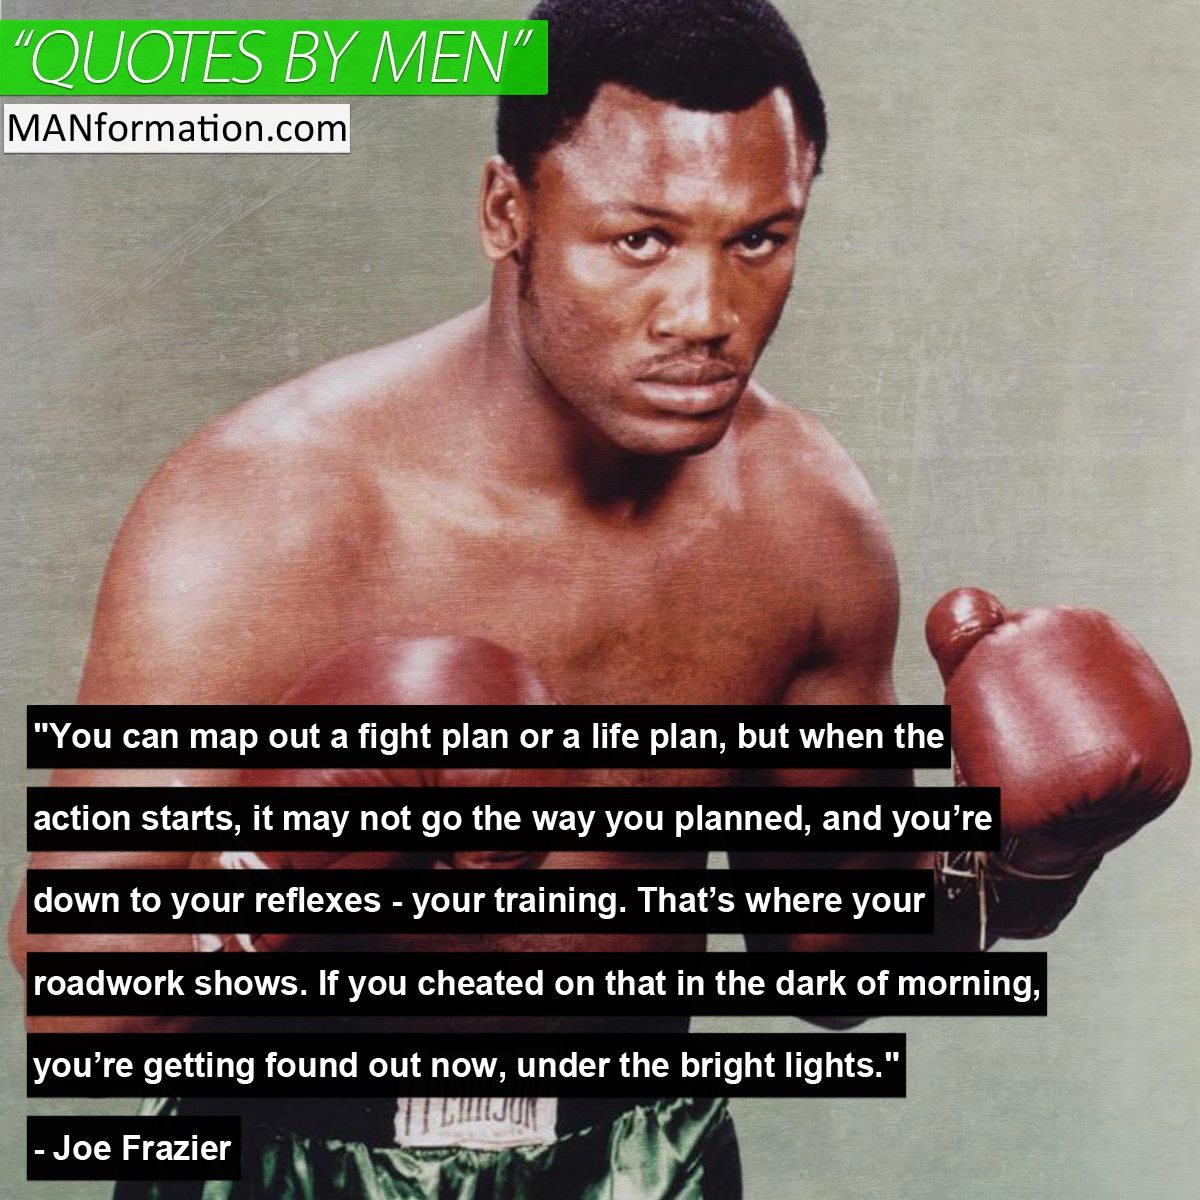 [Image] Joe Frazier: The Roadwork